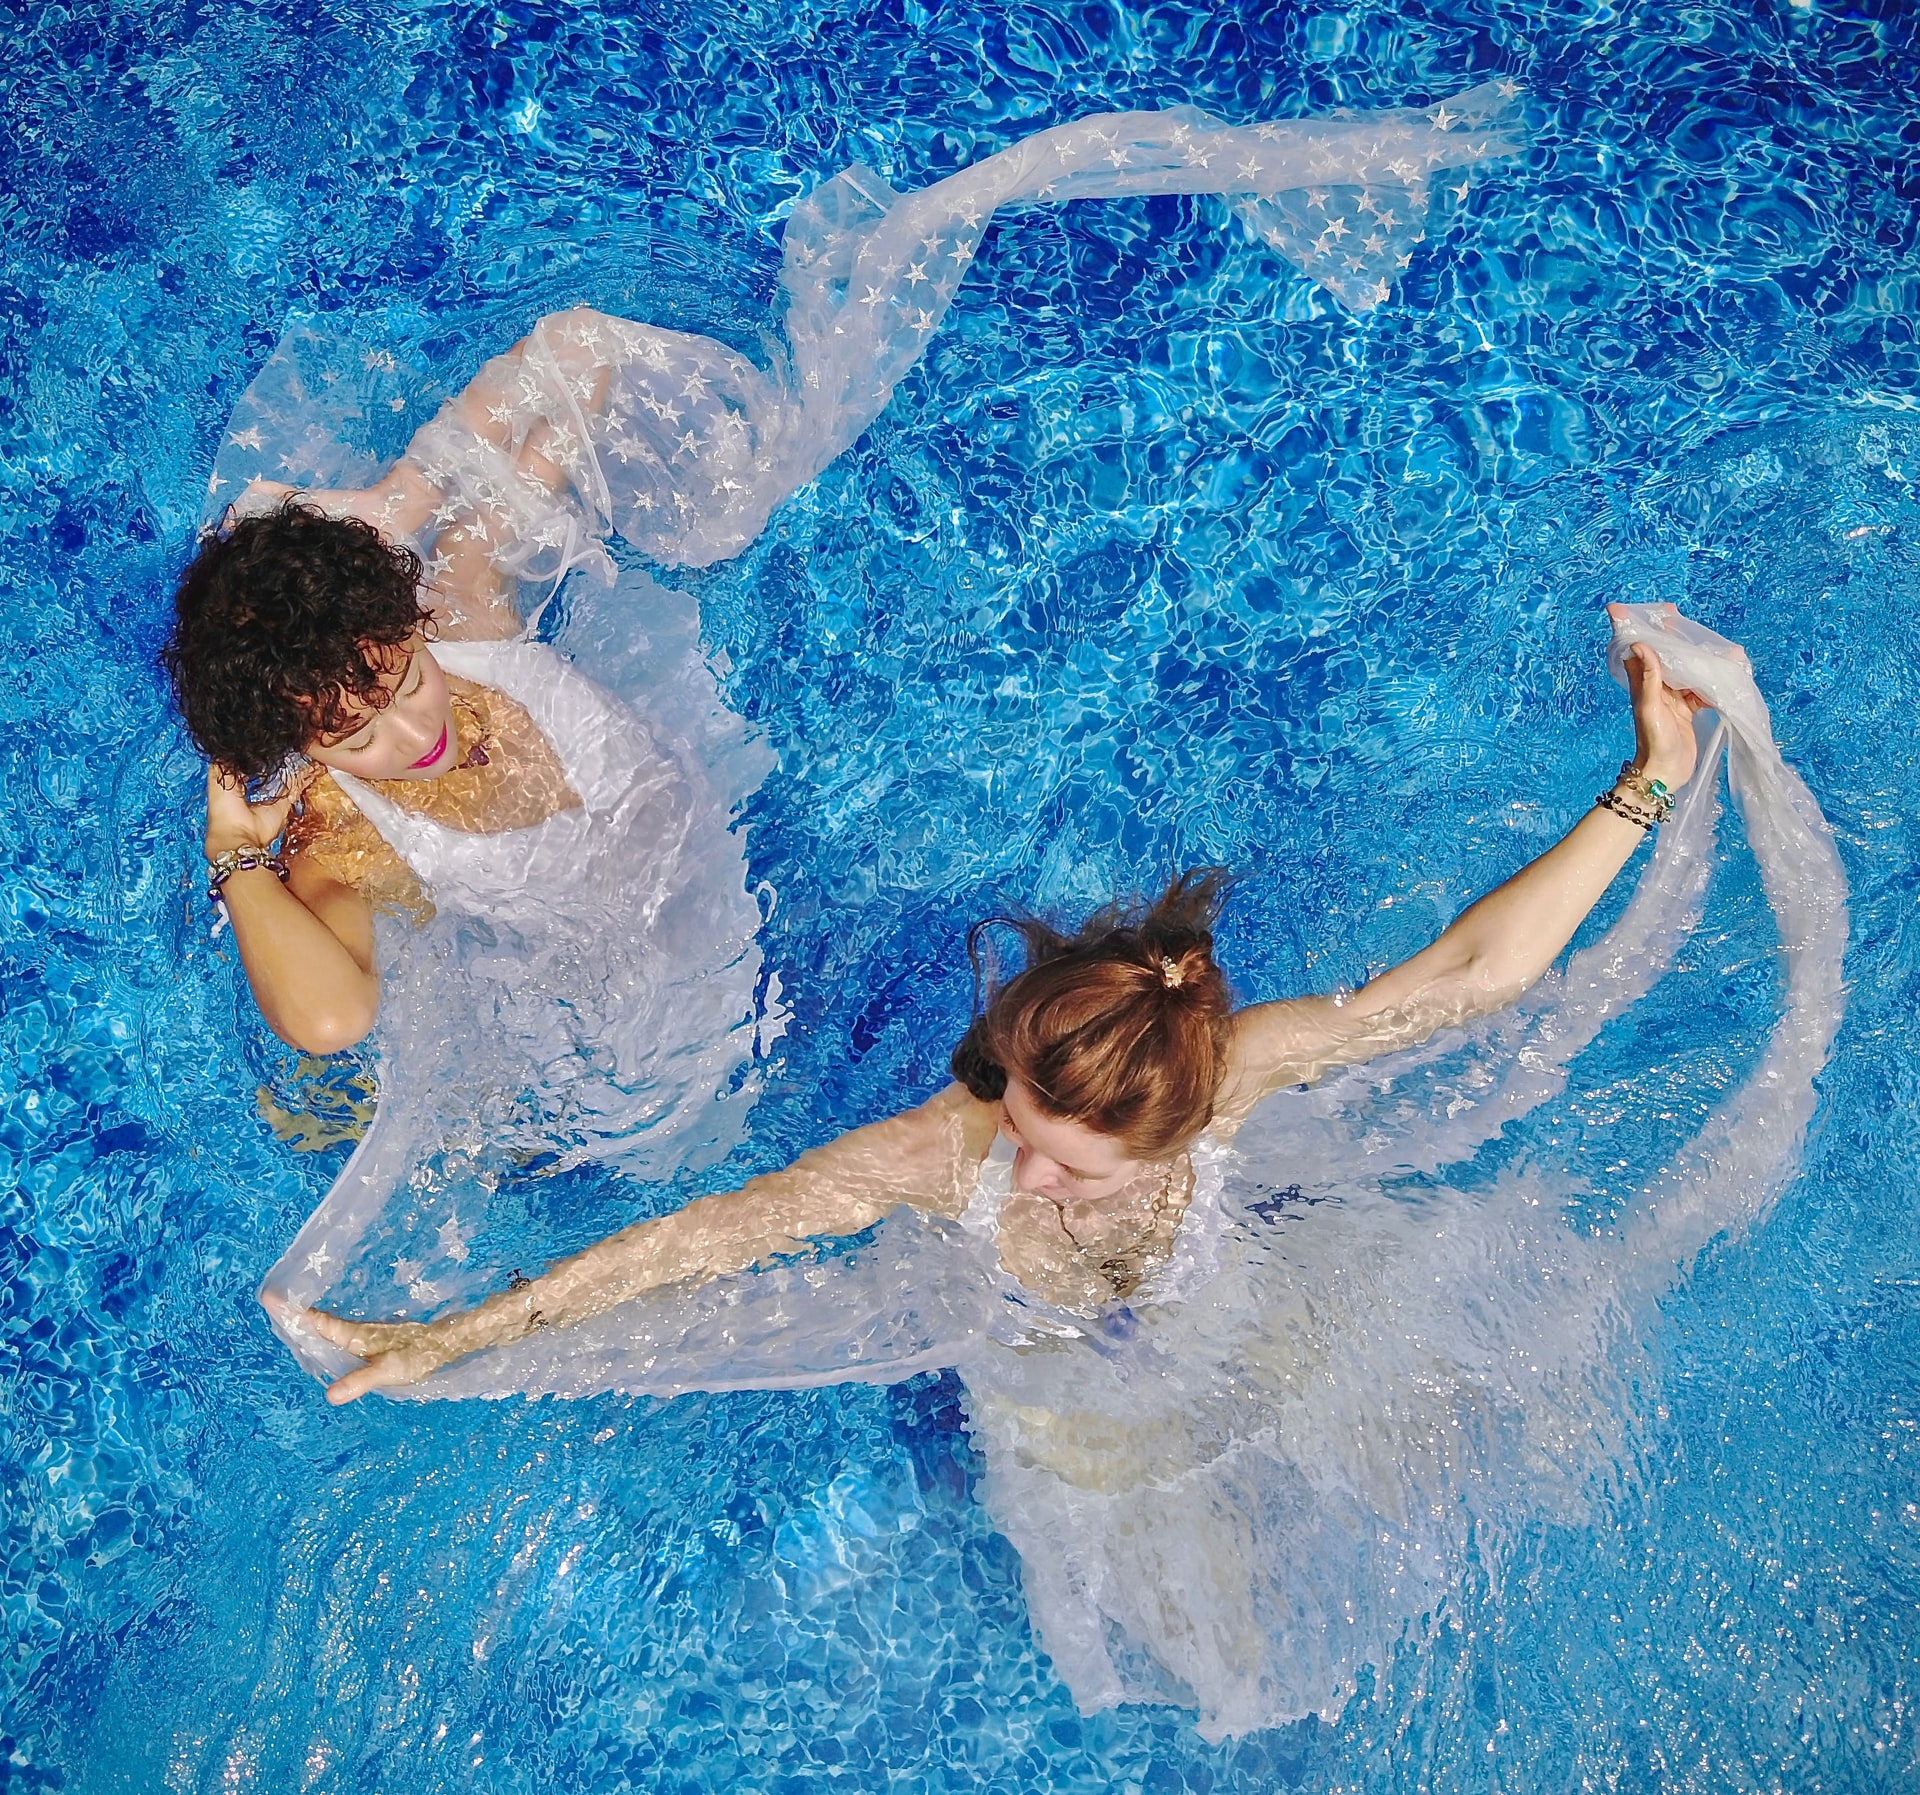 Two women exercising in a swimming pool with pink fabric